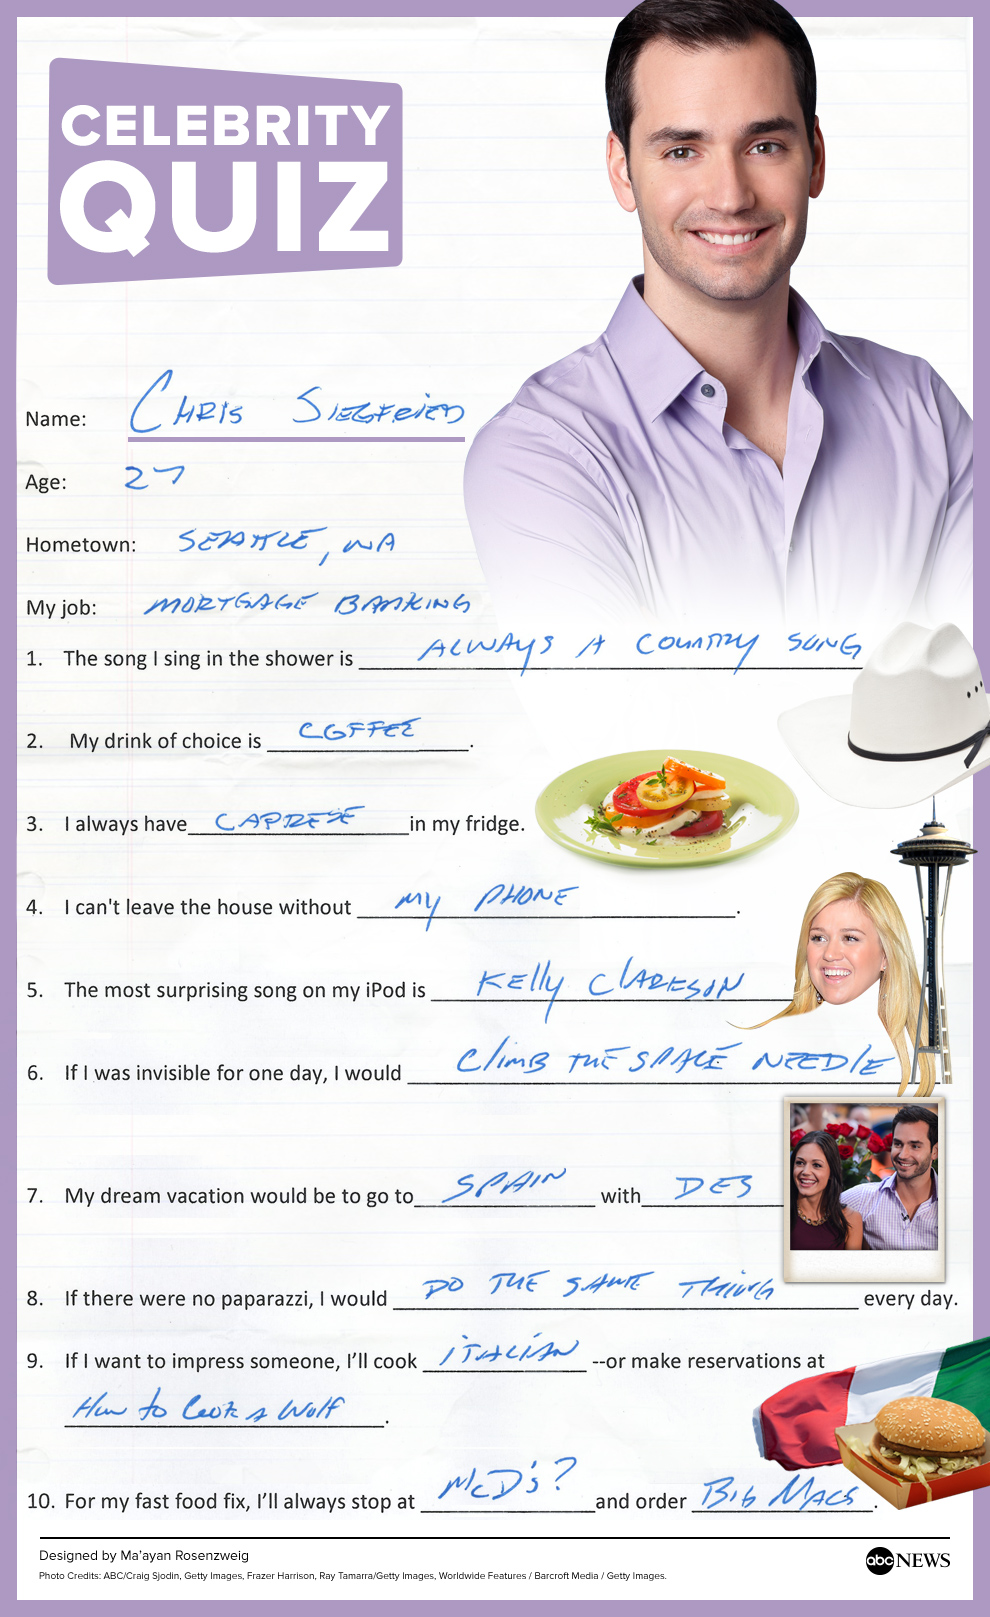 chris siegfried tackles the abc news quiz in his